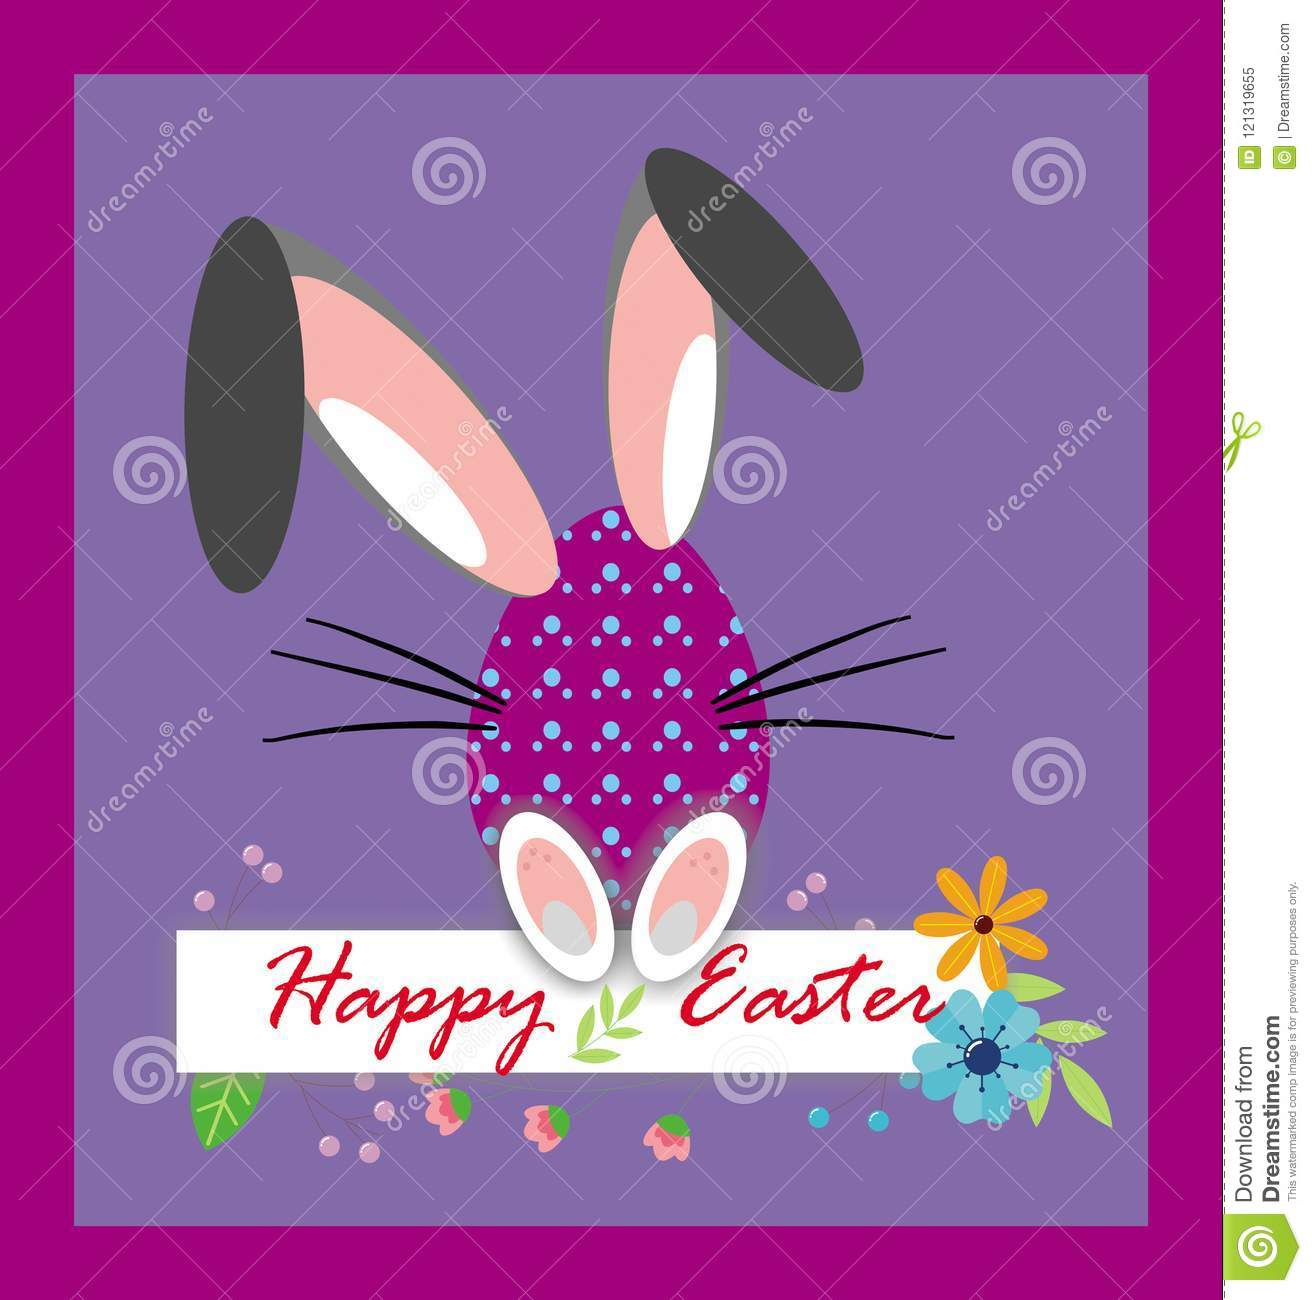 hight resolution of happy easter funny eggs clipart card on the purple background background with colorful flowers rabbit ears easter greeting card easter egg